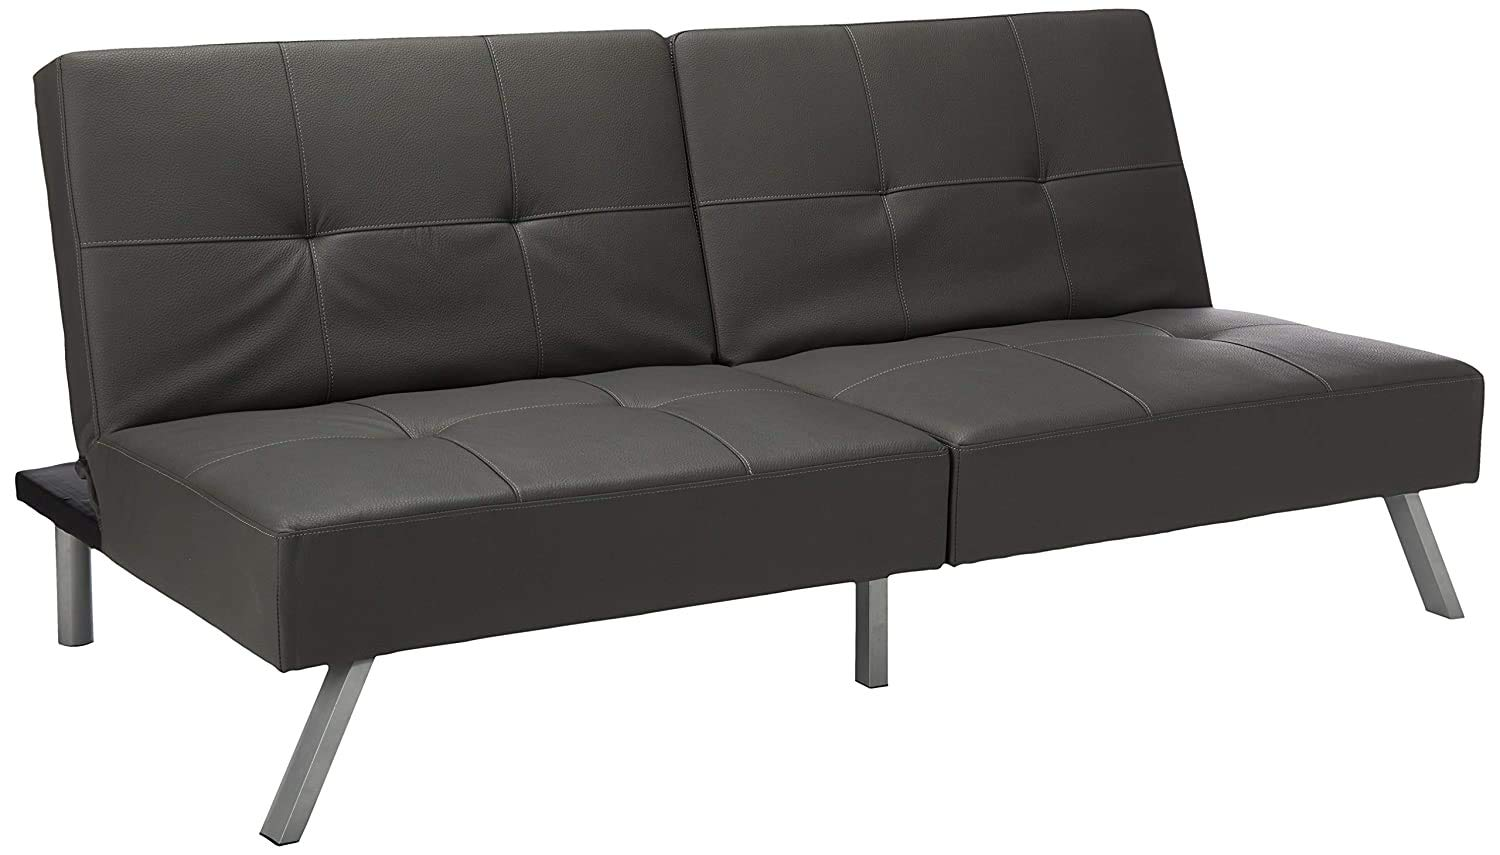 Grey Vinyl Click Clack Futon Sofa Bed